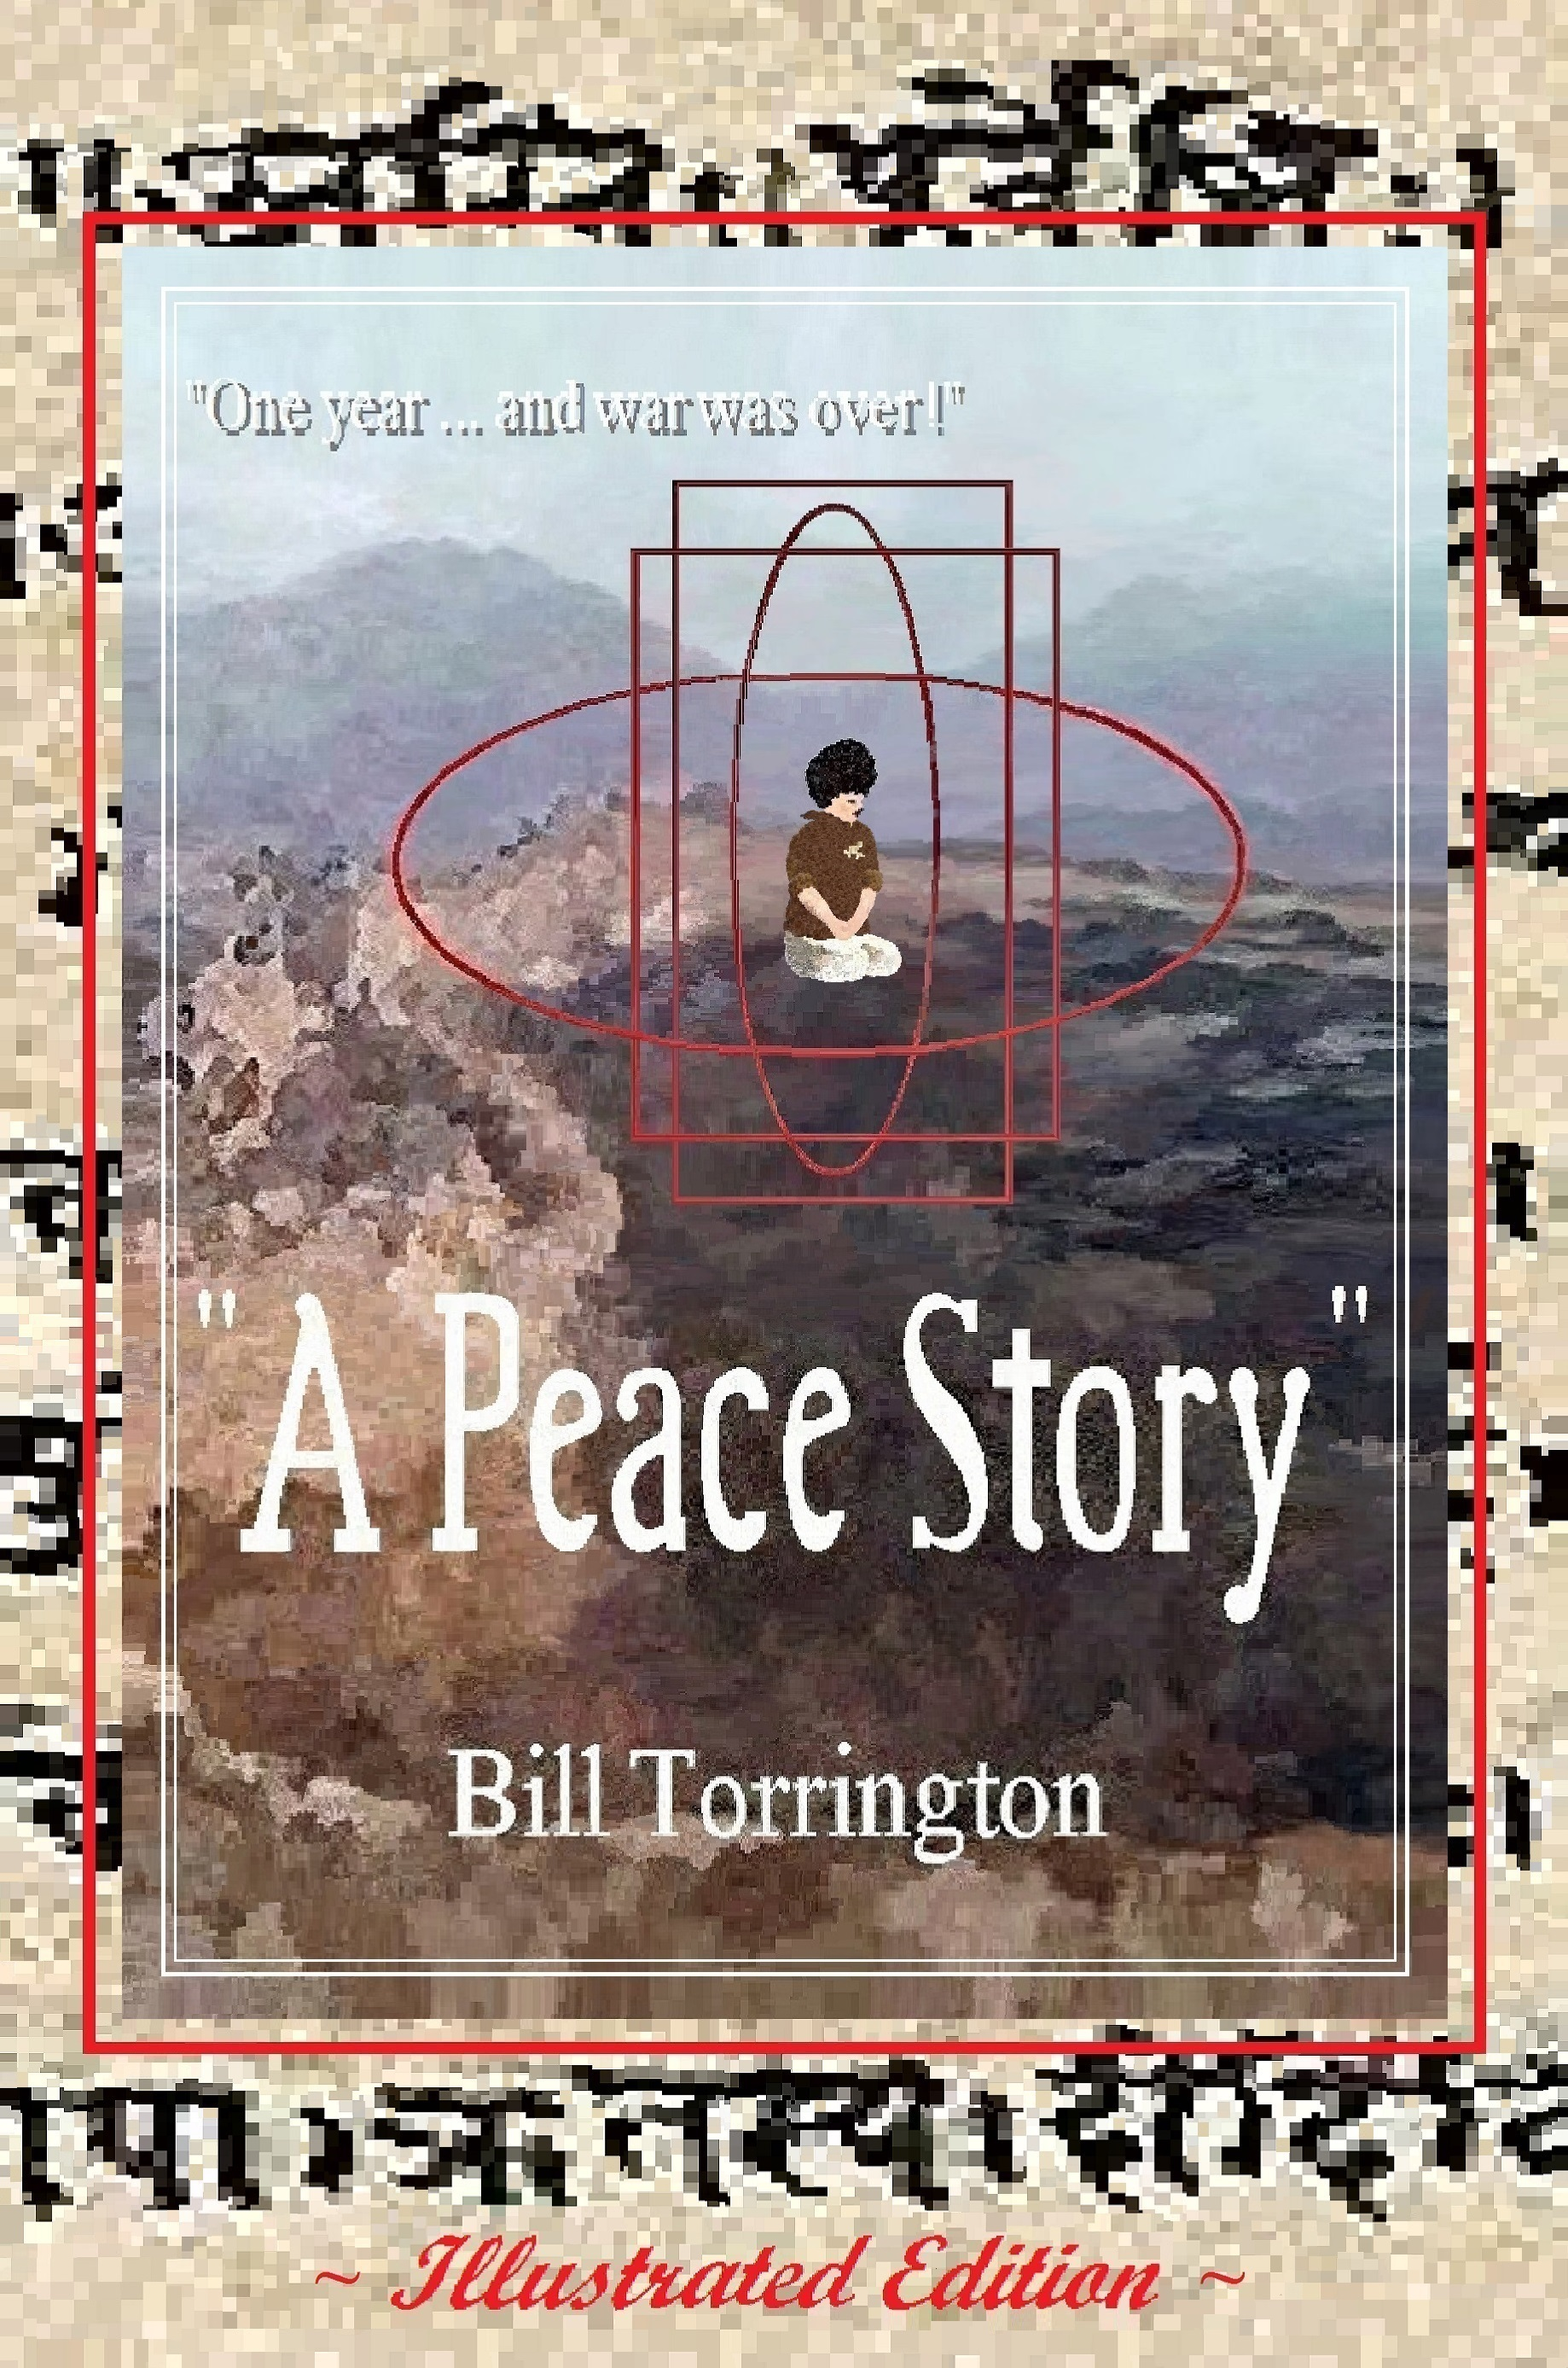 A-Peace-Story-cover.jpg